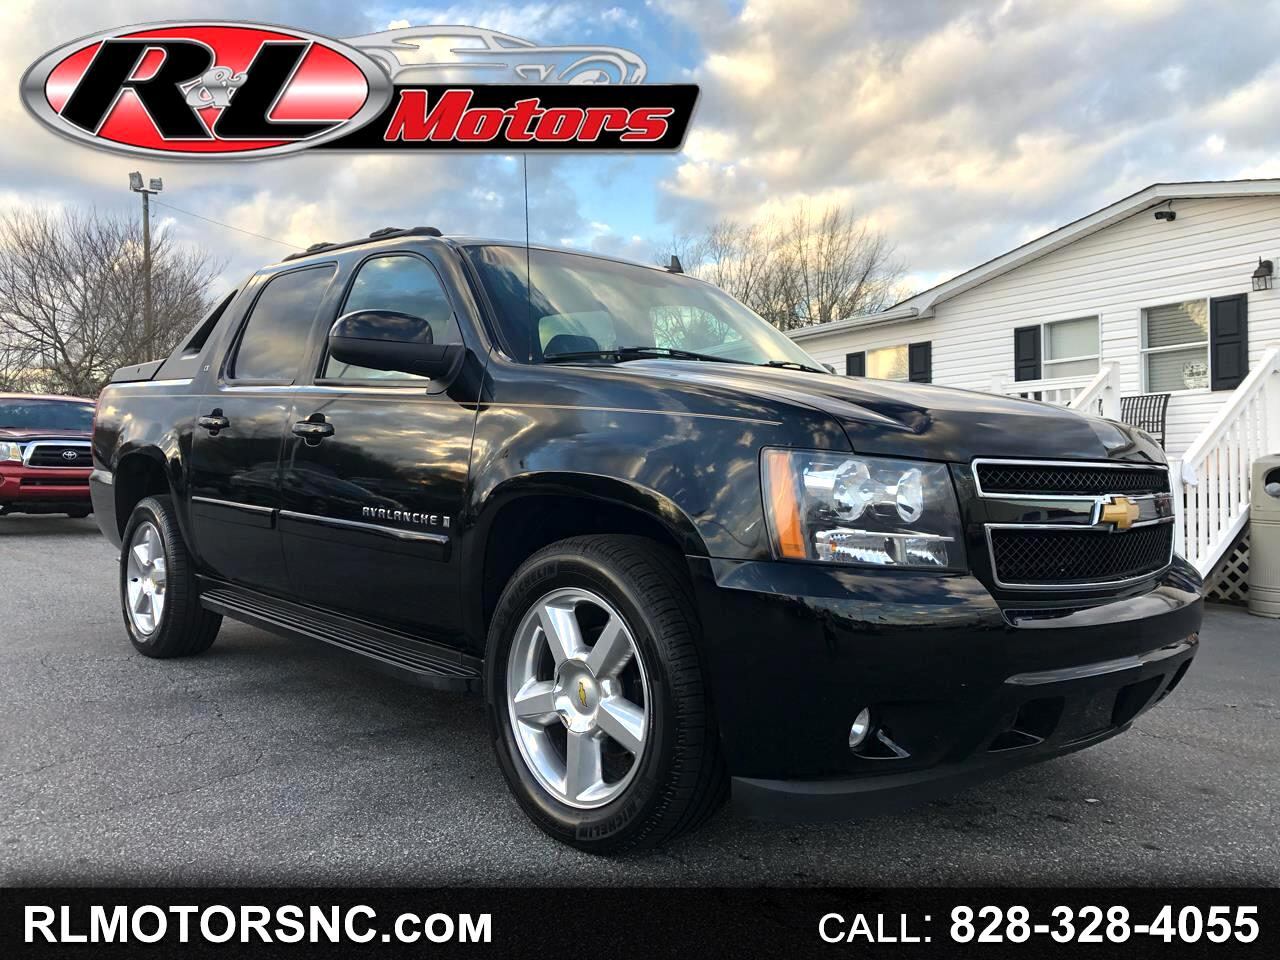 2007 Chevrolet Avalanche 2WD Crew Cab LS